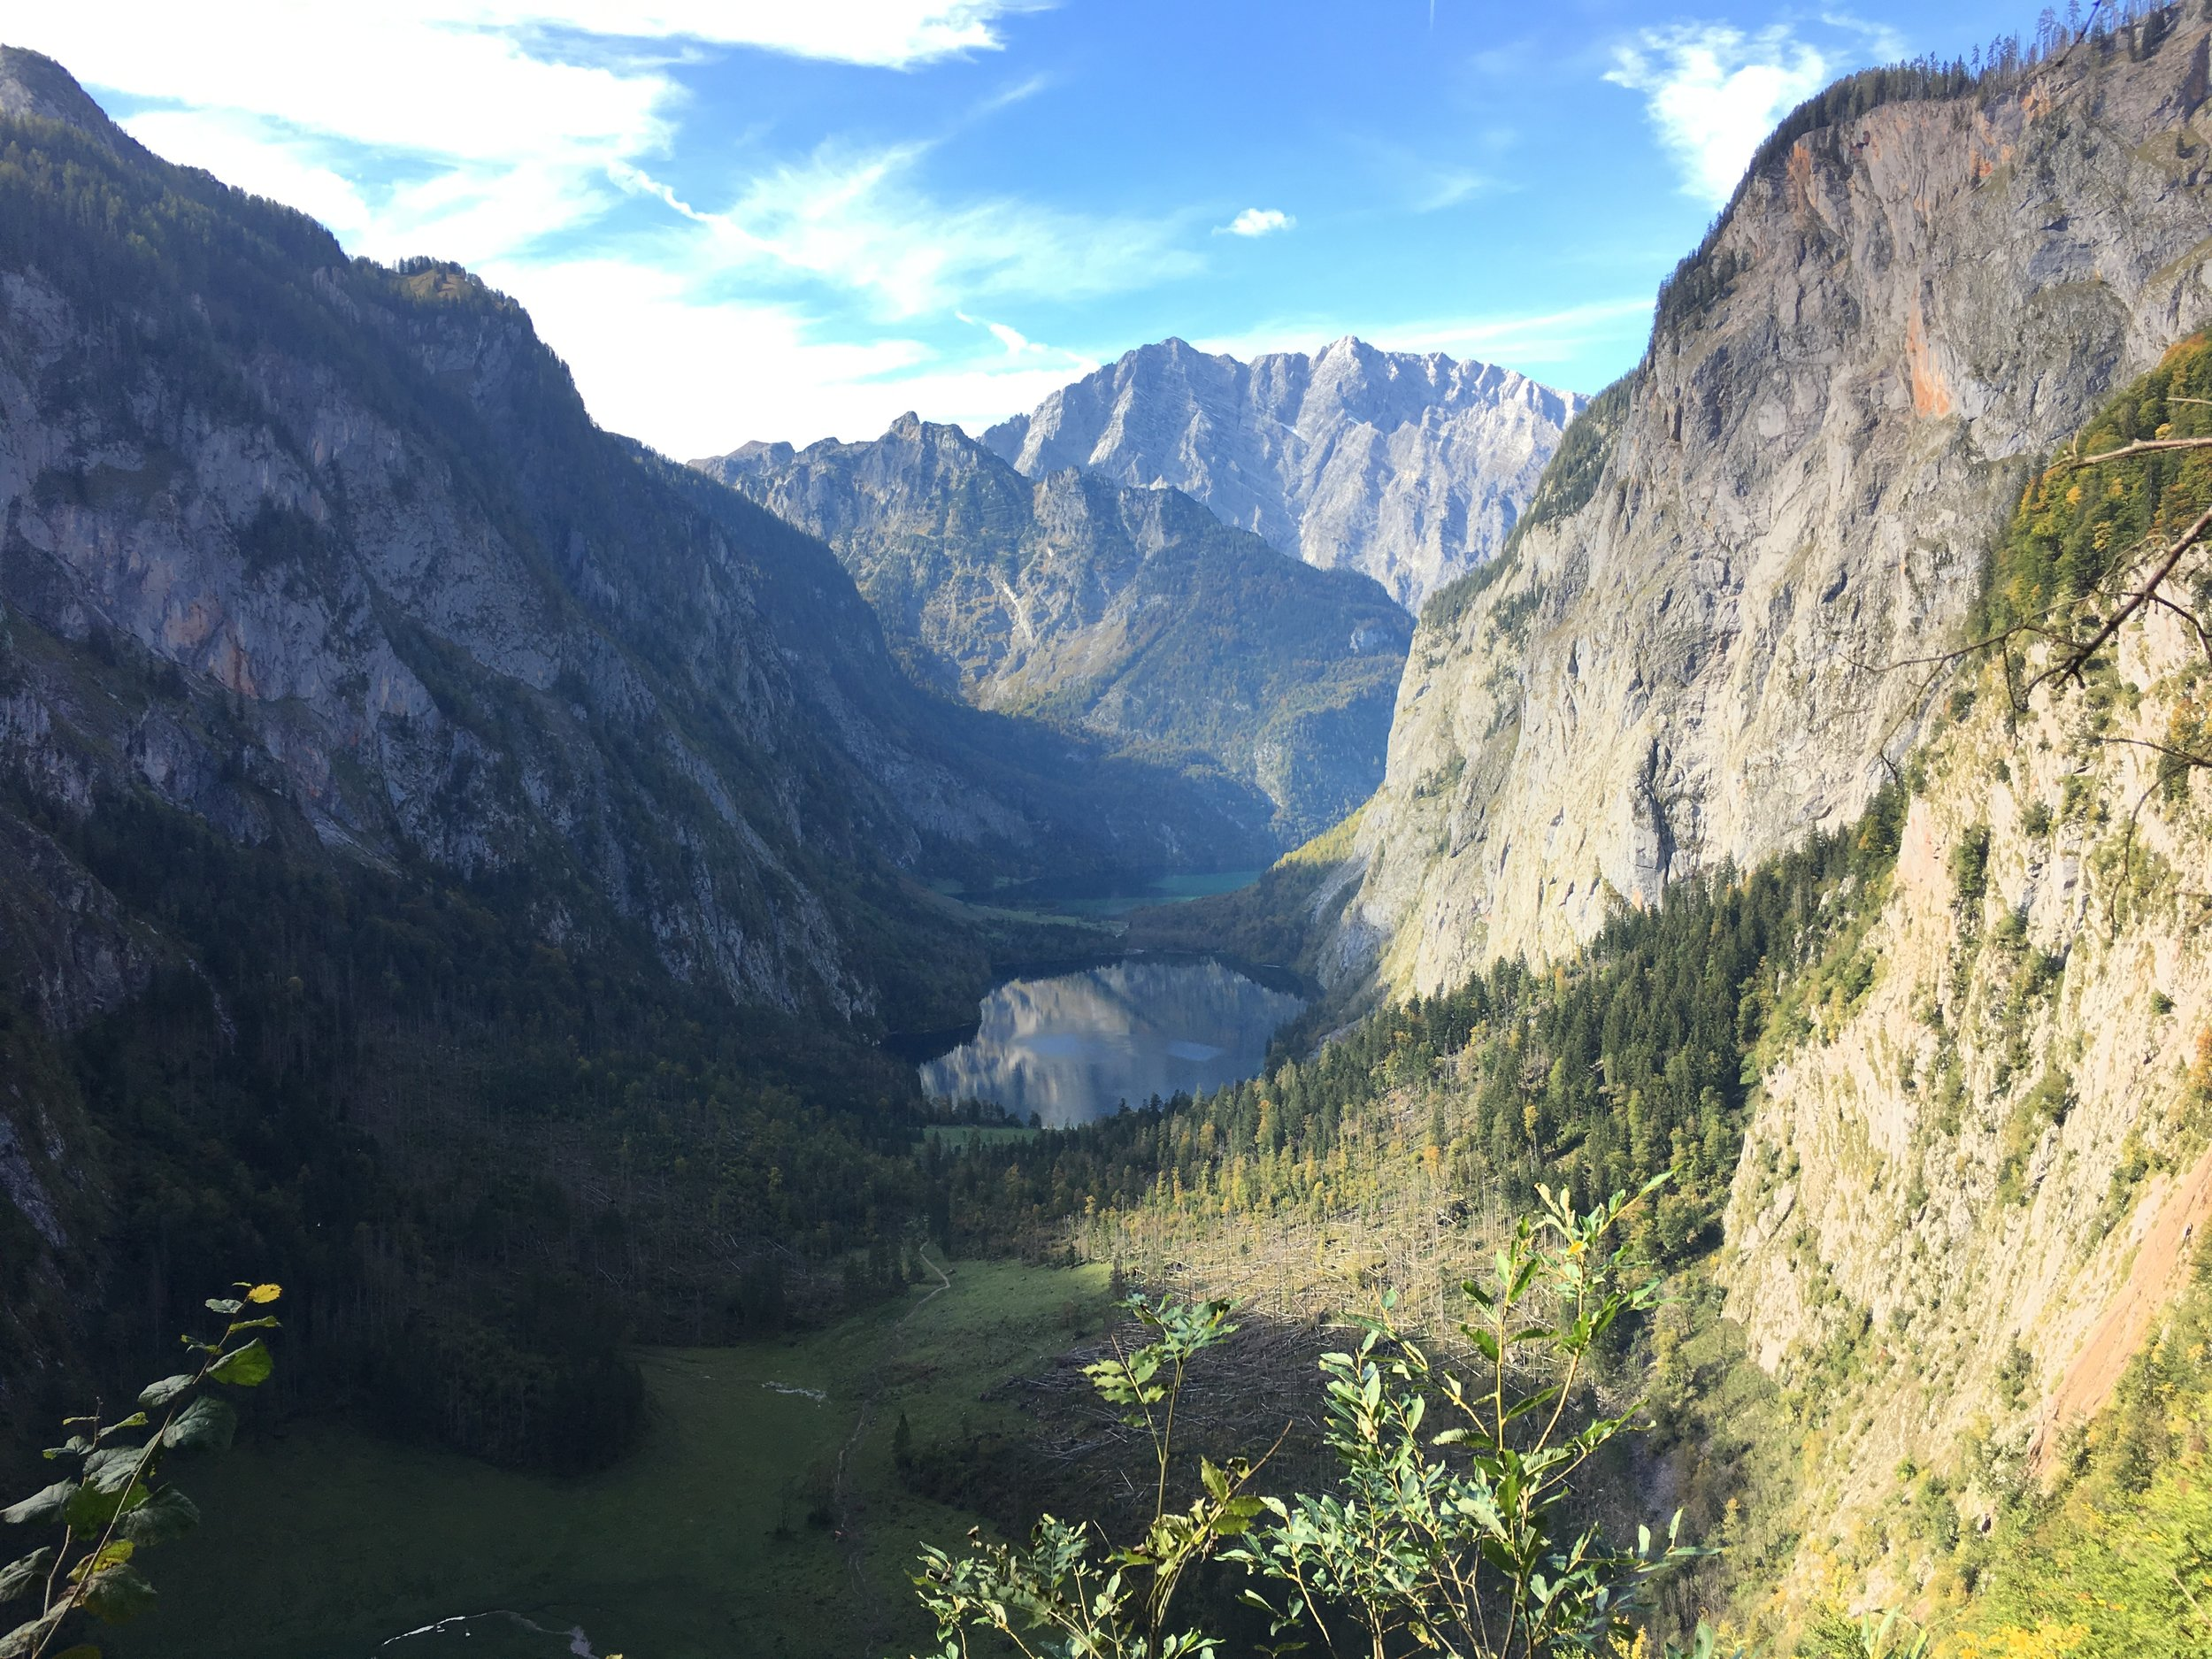 Obersee and Konigssee lakes.